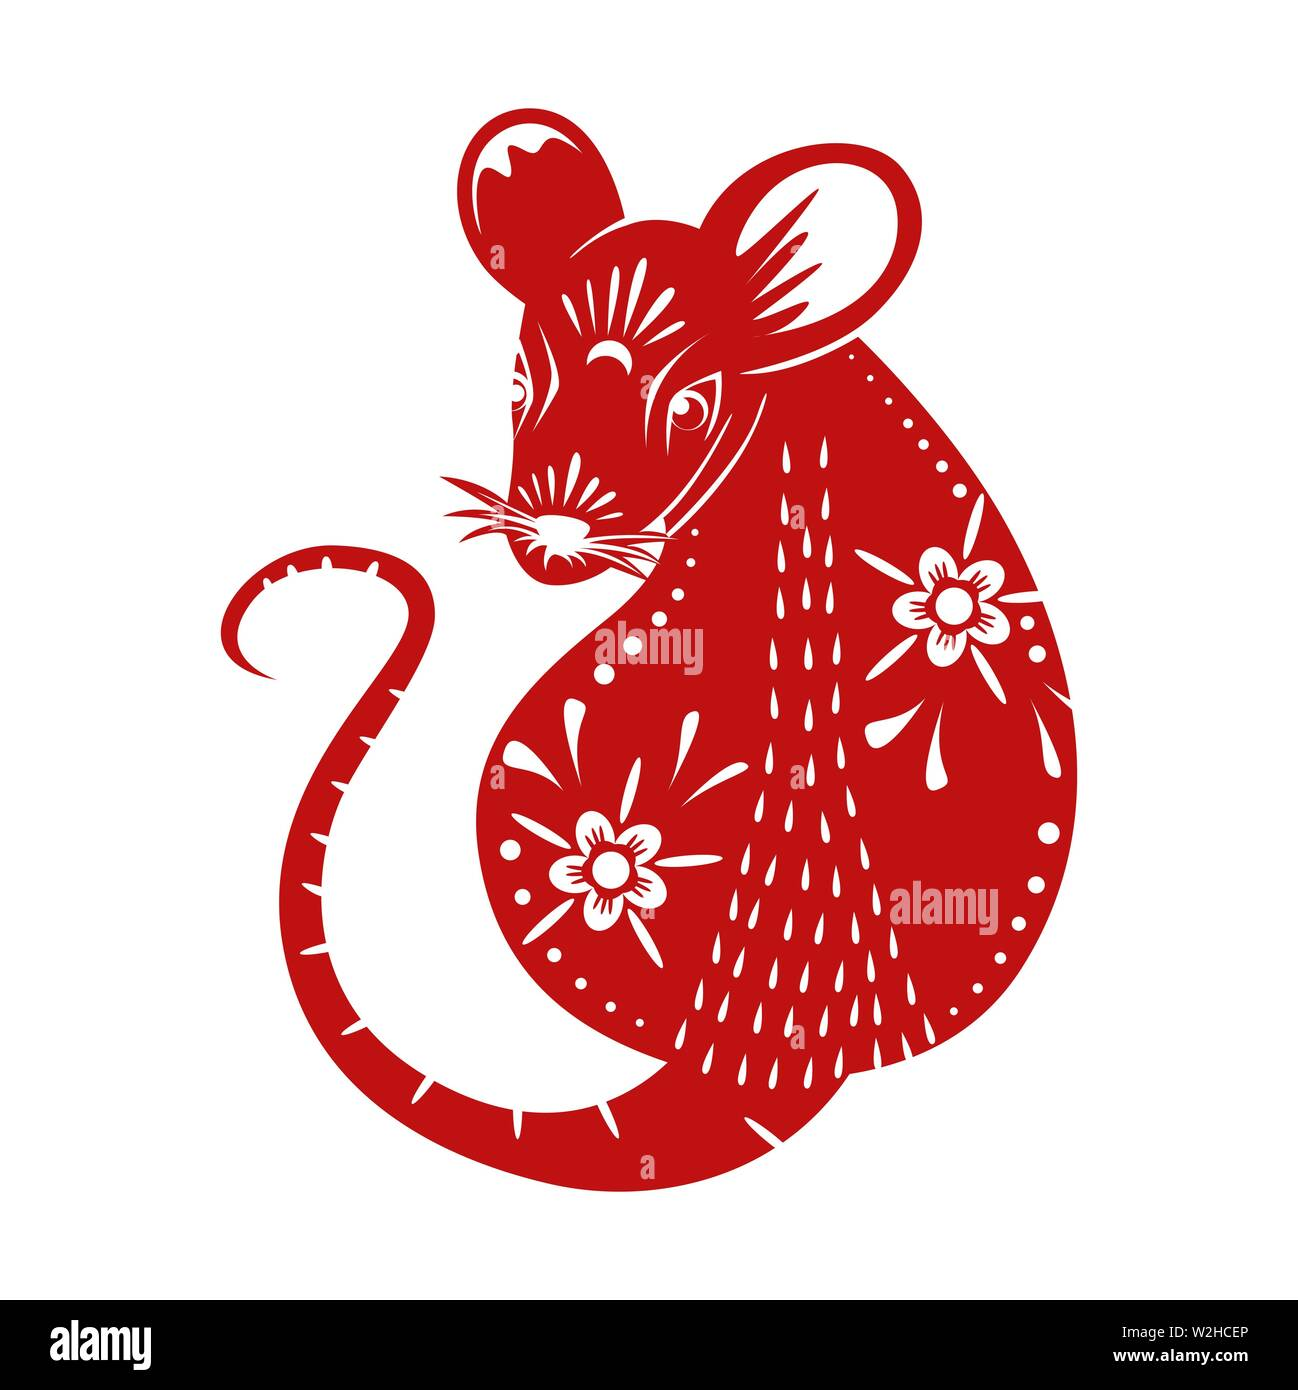 Chinese New Year 2020 Animal.Year Of The Rat Chinese New Year 2020 Red Paper Cut Rat